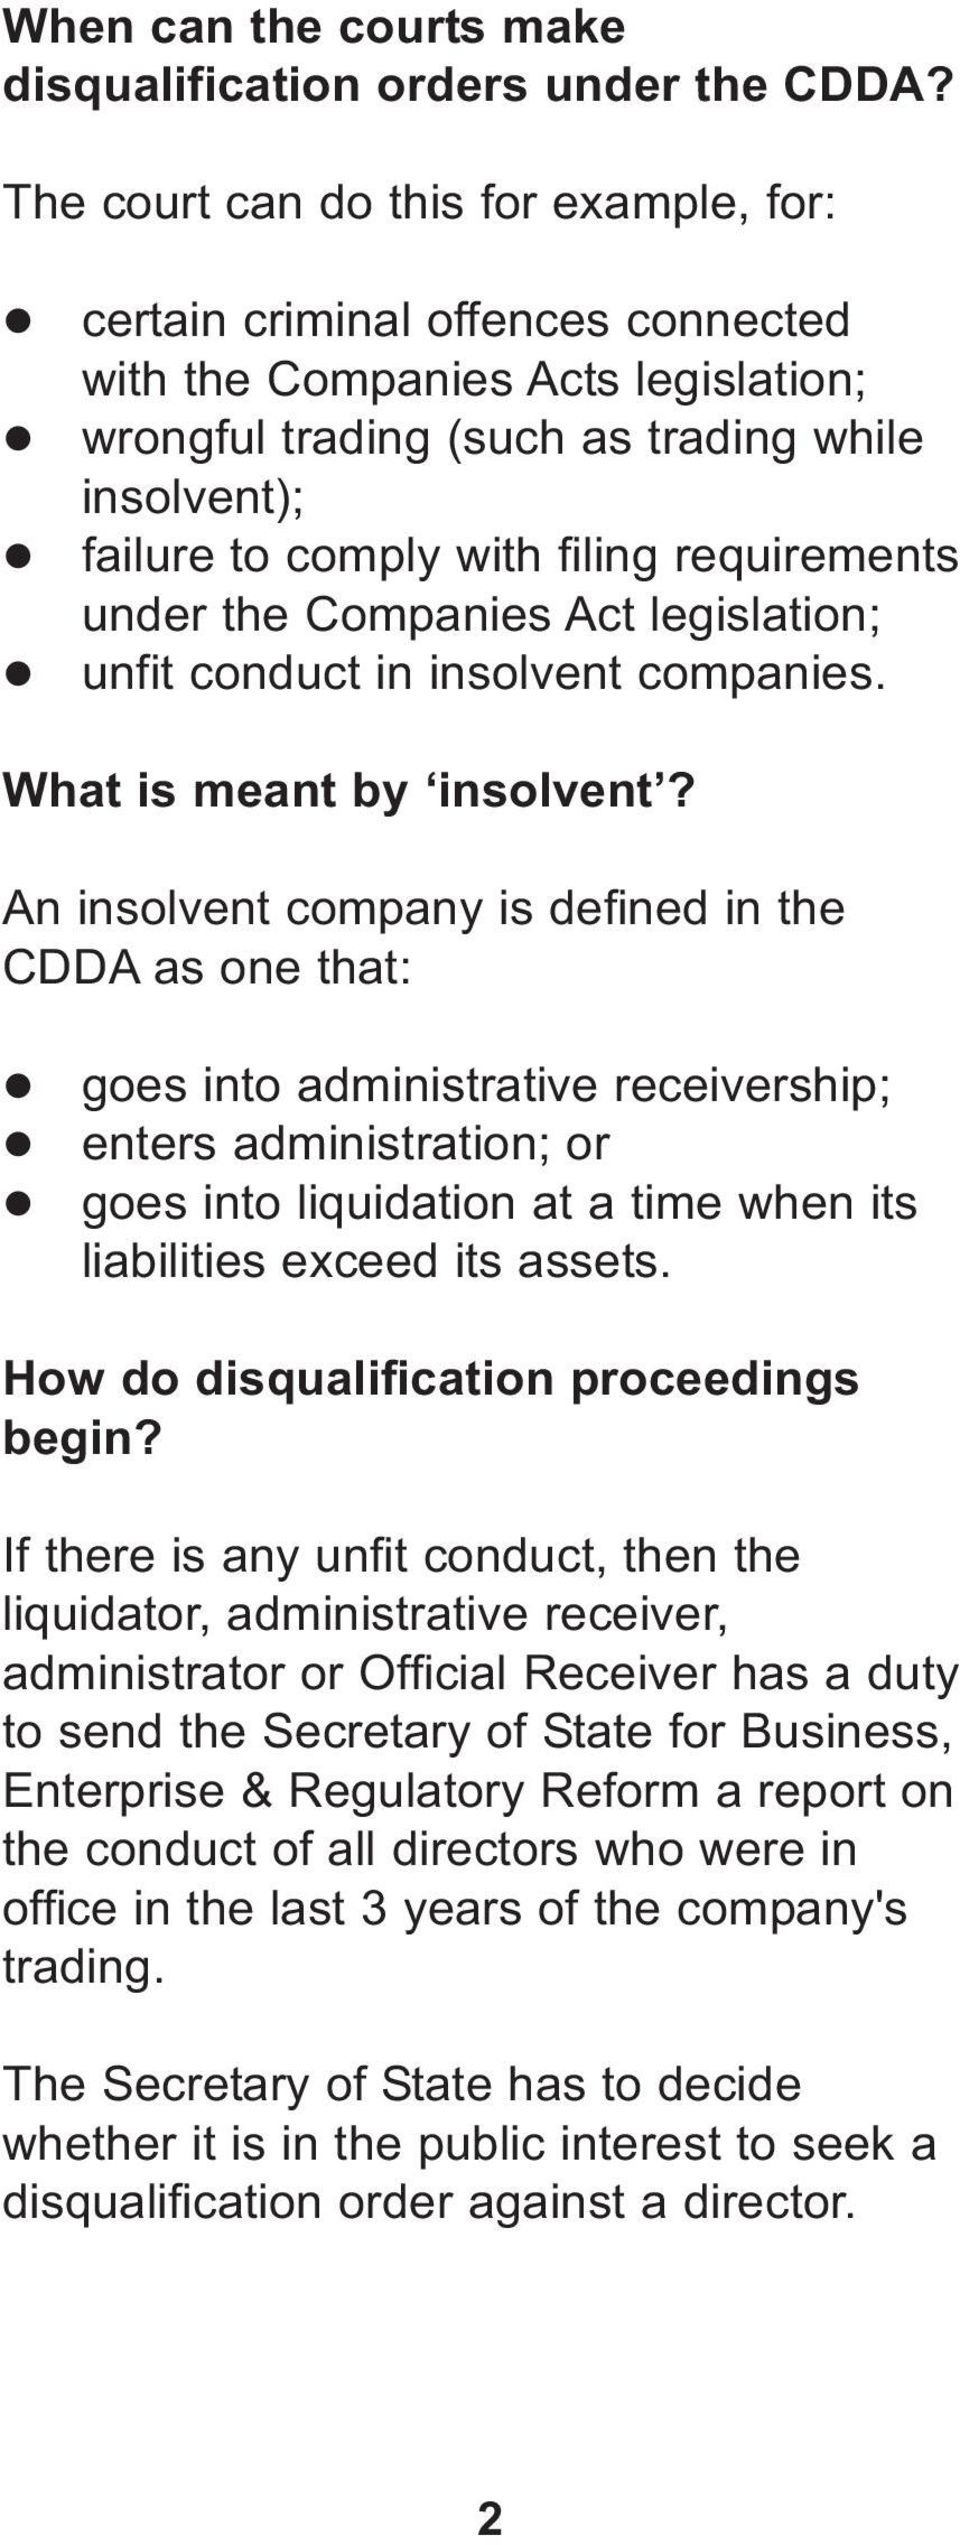 requirements under the Companies Act legislation; unfit conduct in insolvent companies. What is meant by insolvent?